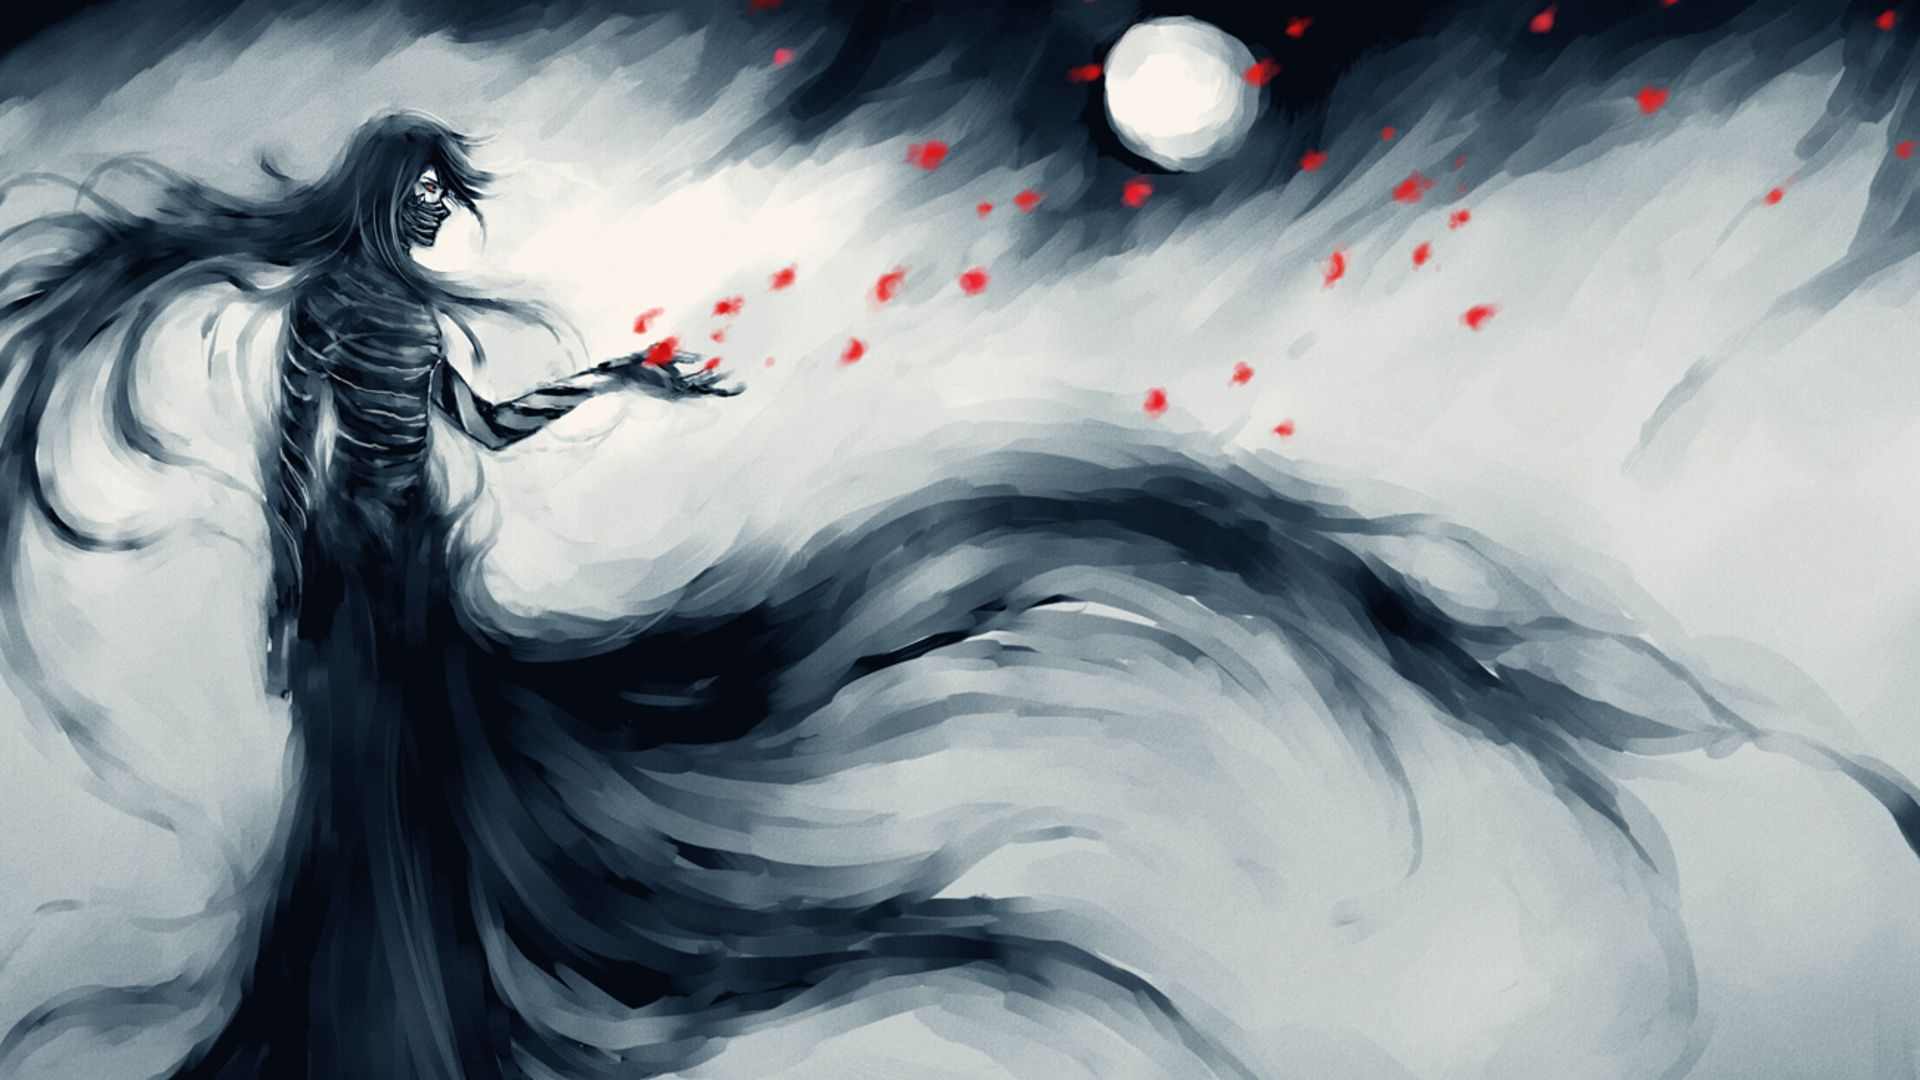 Bleach Wallpaper Widescreen 12952 Bleach Anime Ichigo Bleach Art Anime Wallpaper 1920x1080